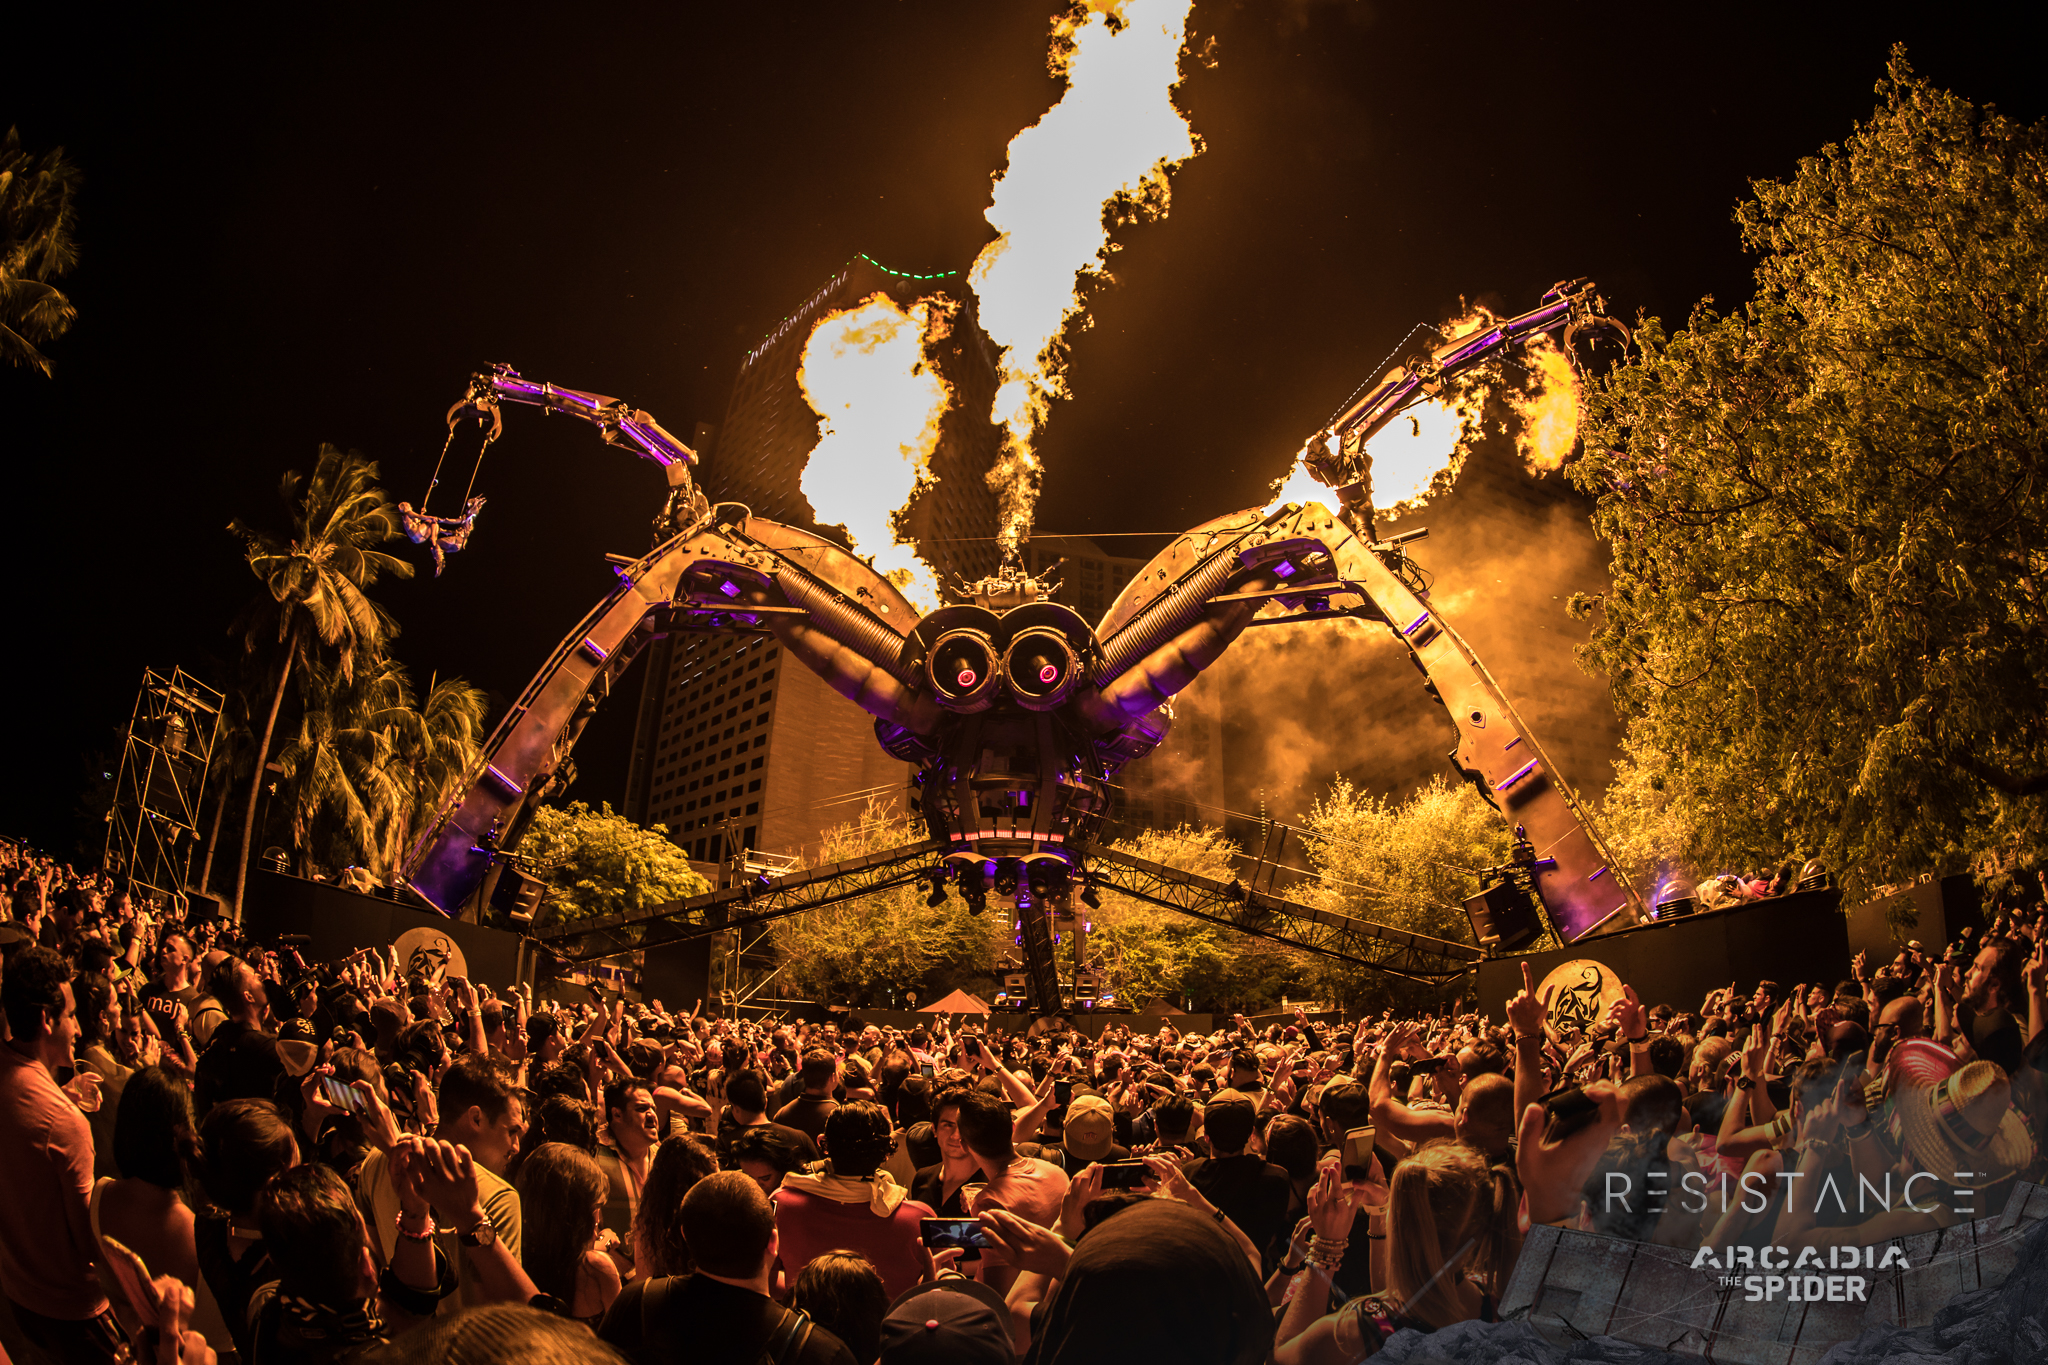 Ultra_2017_aLIVE Coverage - RESISTANCE Arcadia Spider